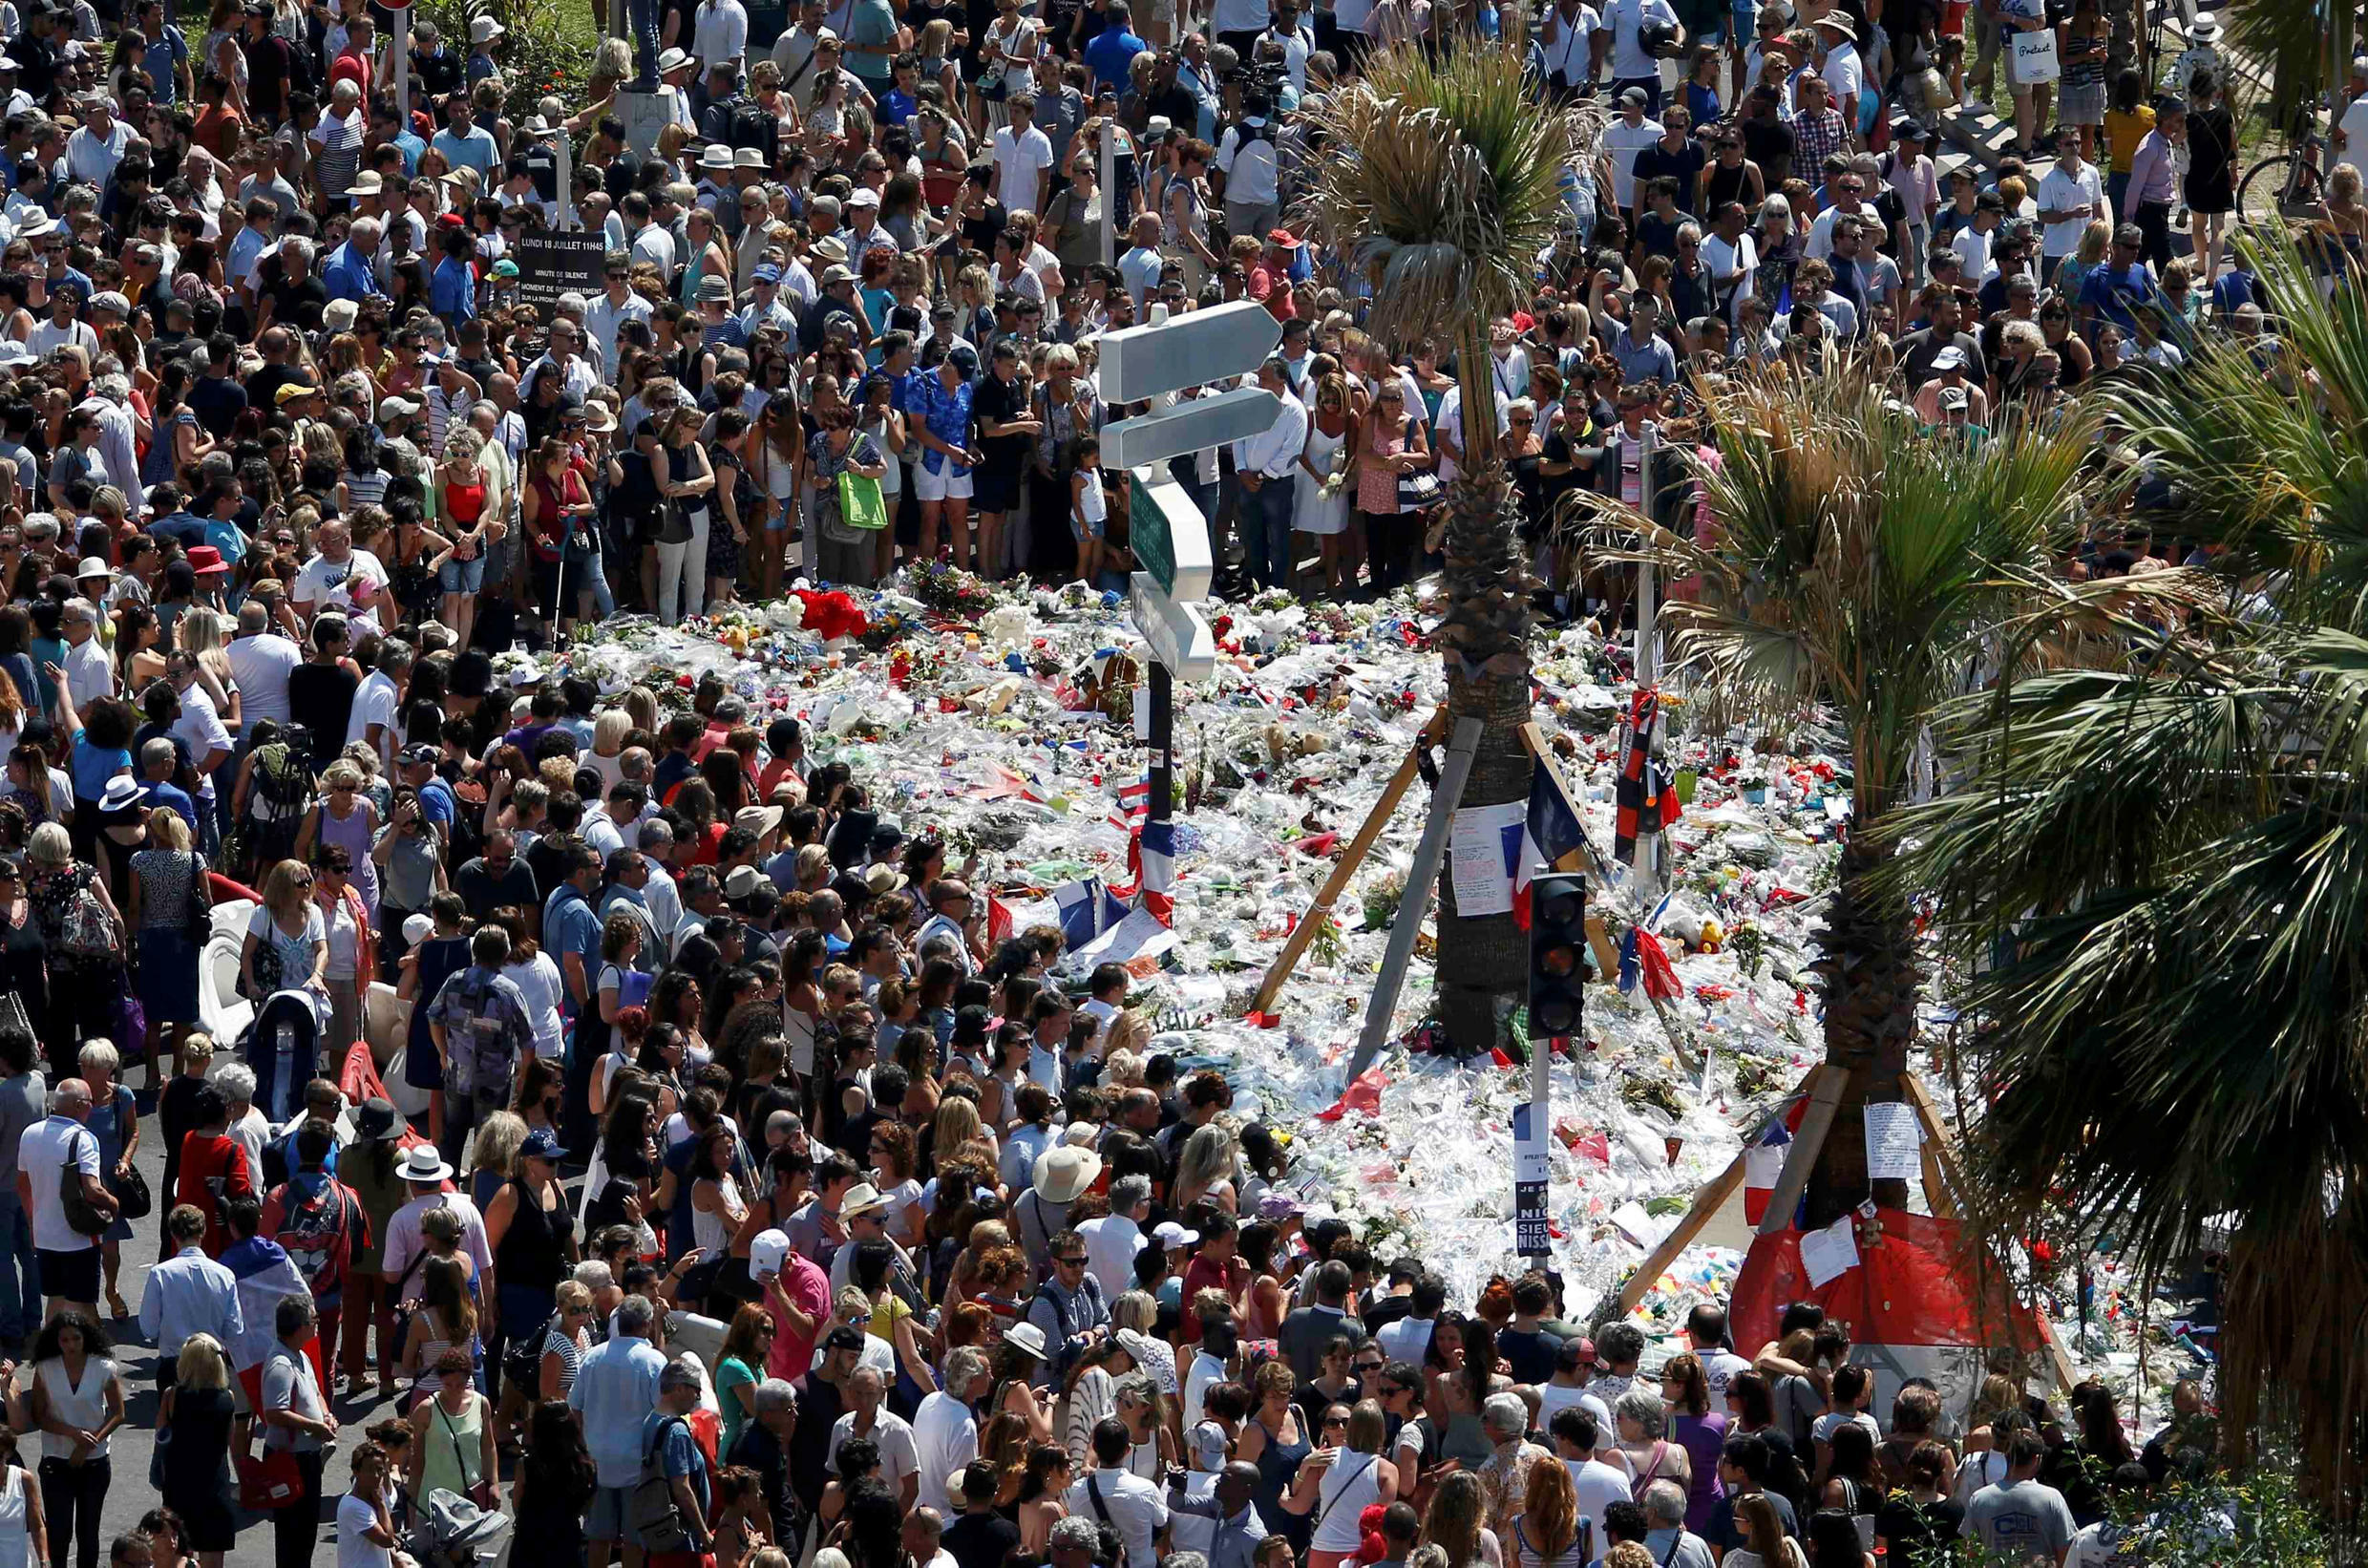 Monday's tribute to the victims on the Promenade des Anglais in Nice